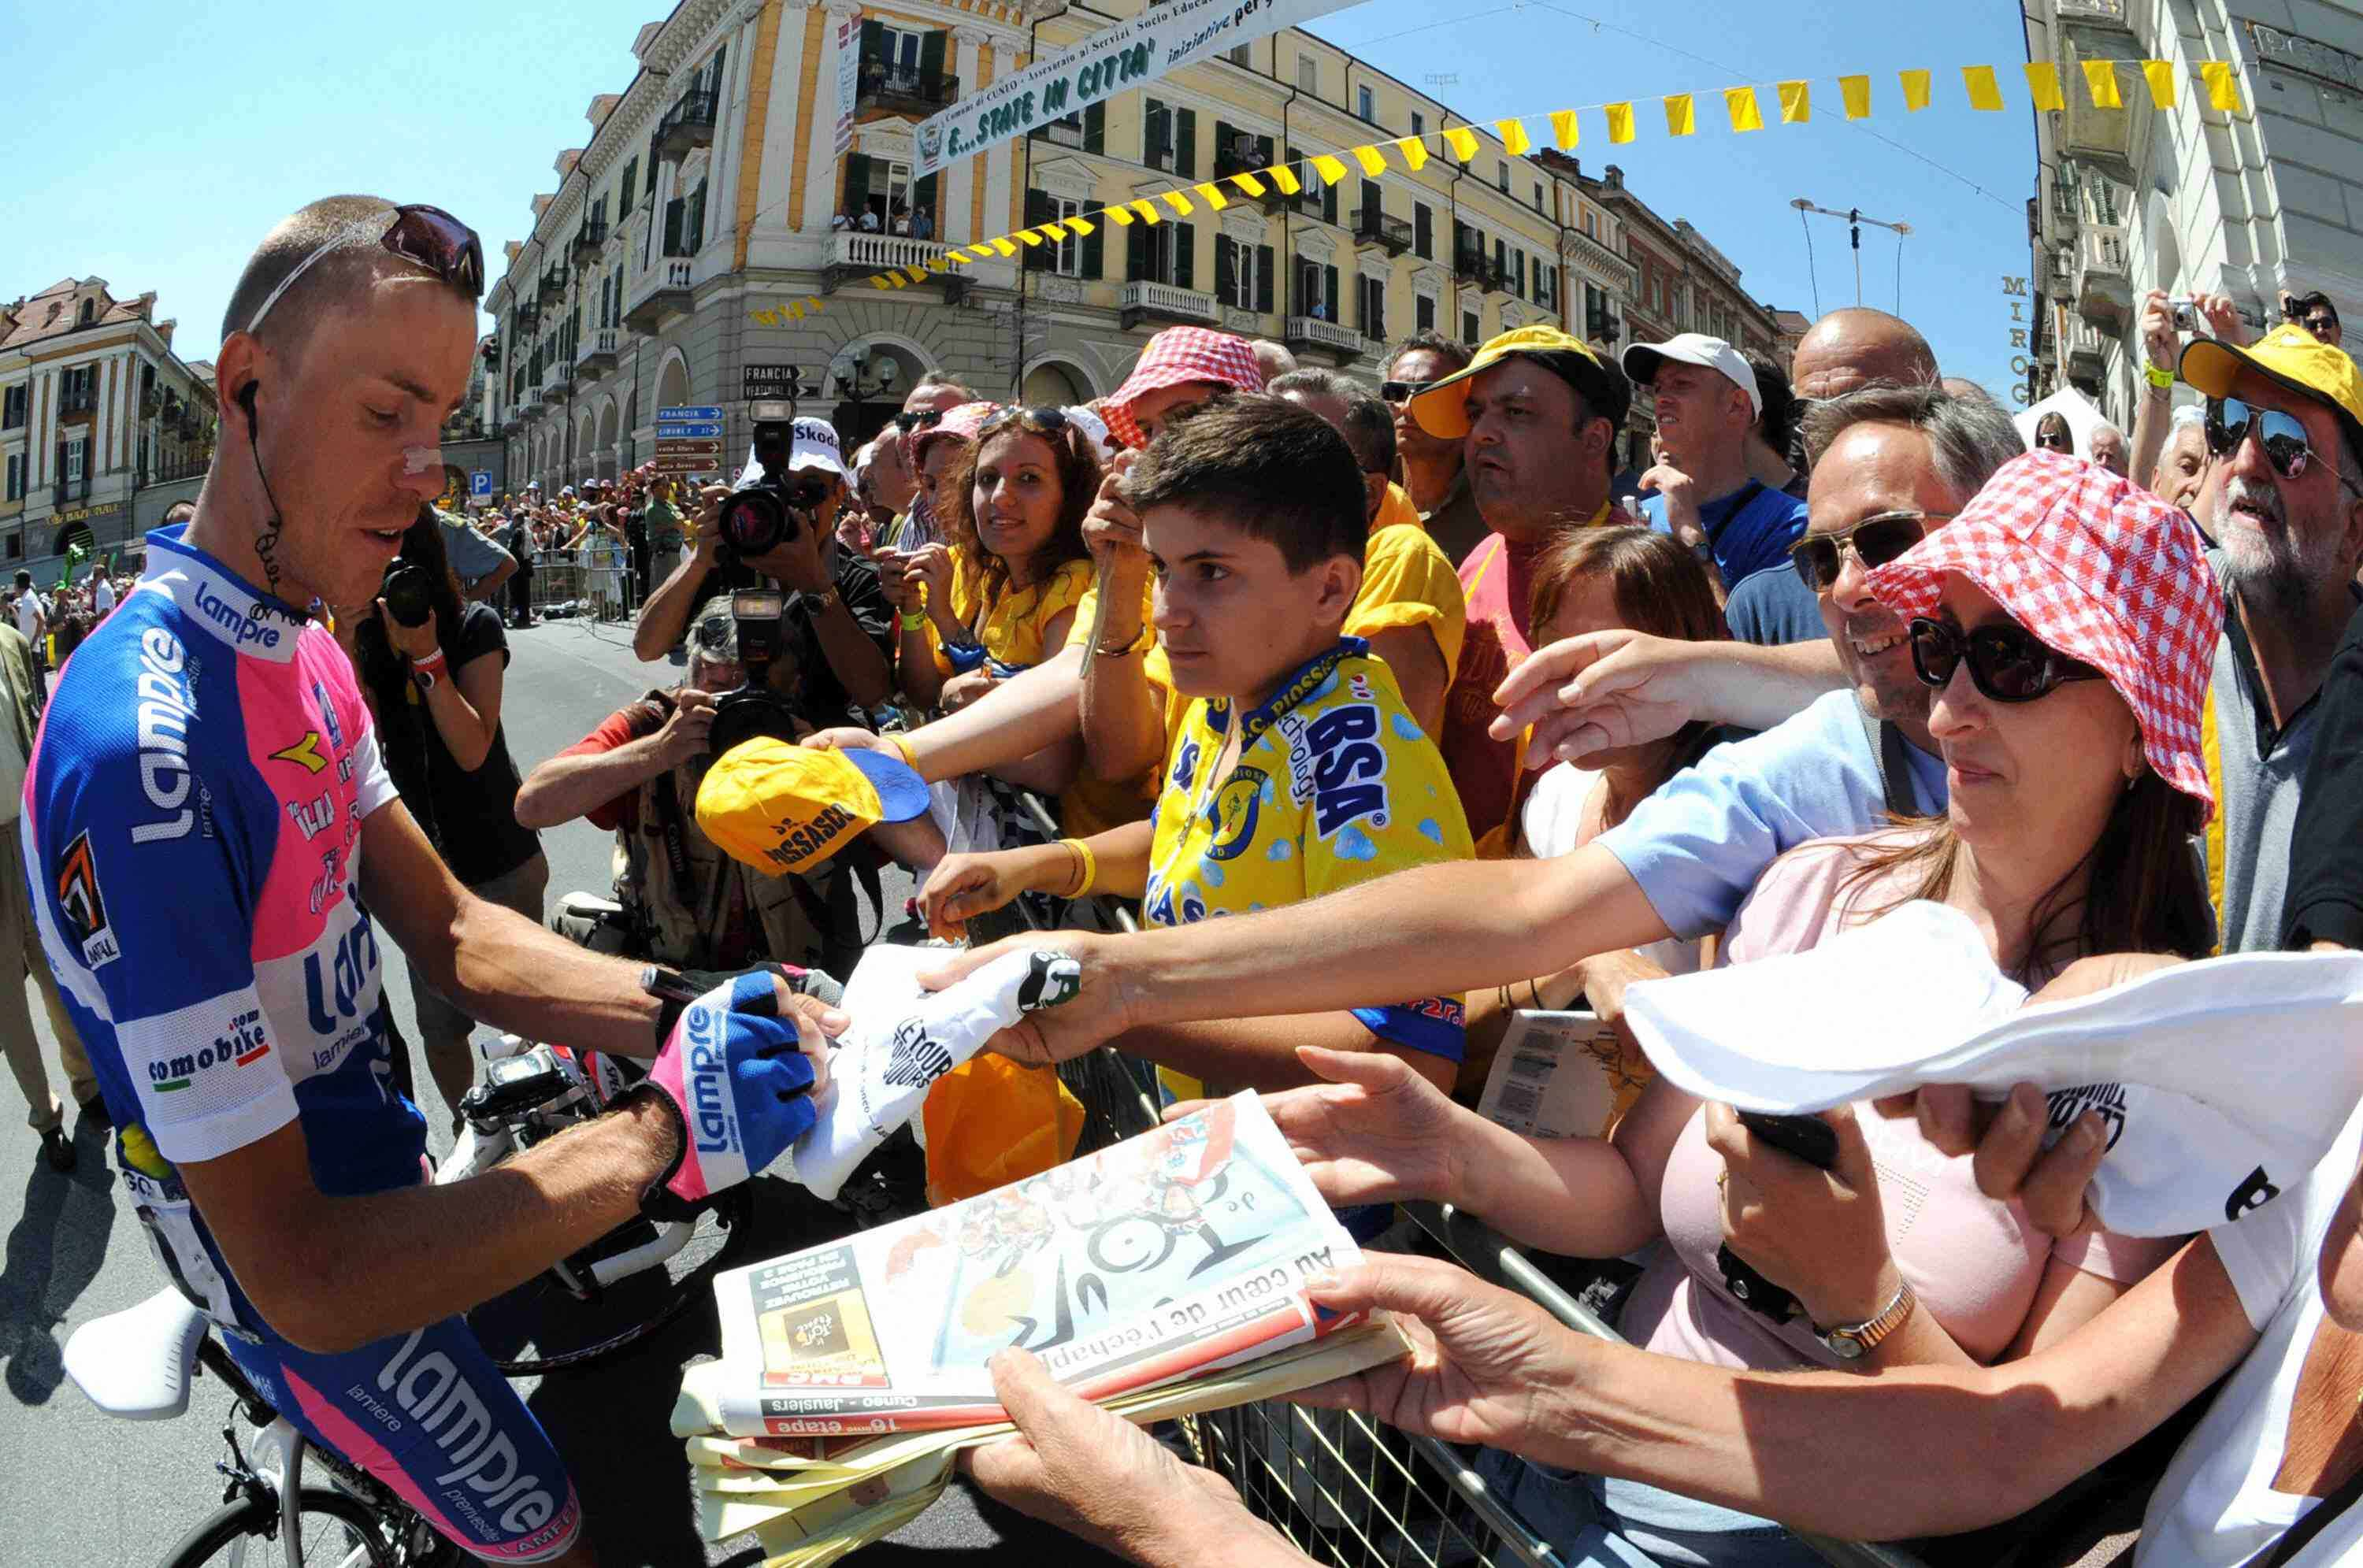 A freshly shorn Damiano Cunego signs autographs before Stage 16 in Italy.